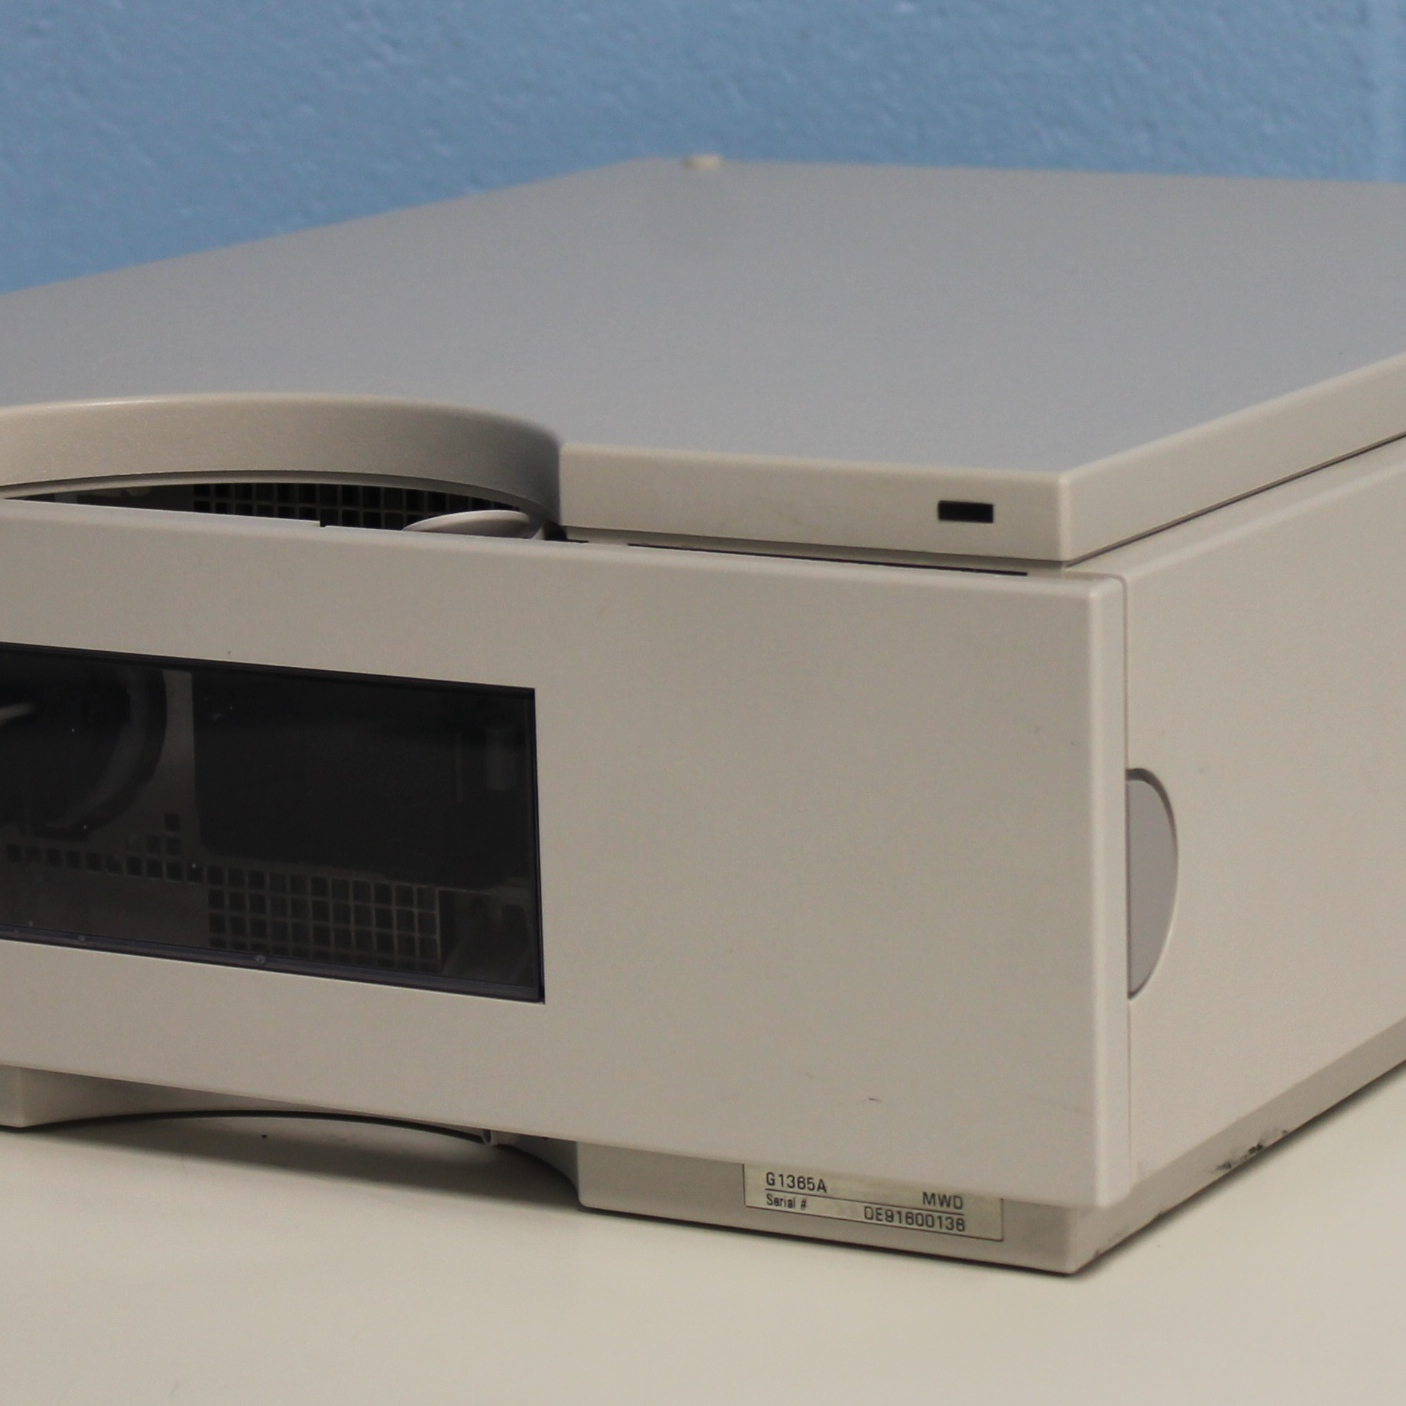 Agilent 1100 Series G1365A Multiple Wavelength Detector Image